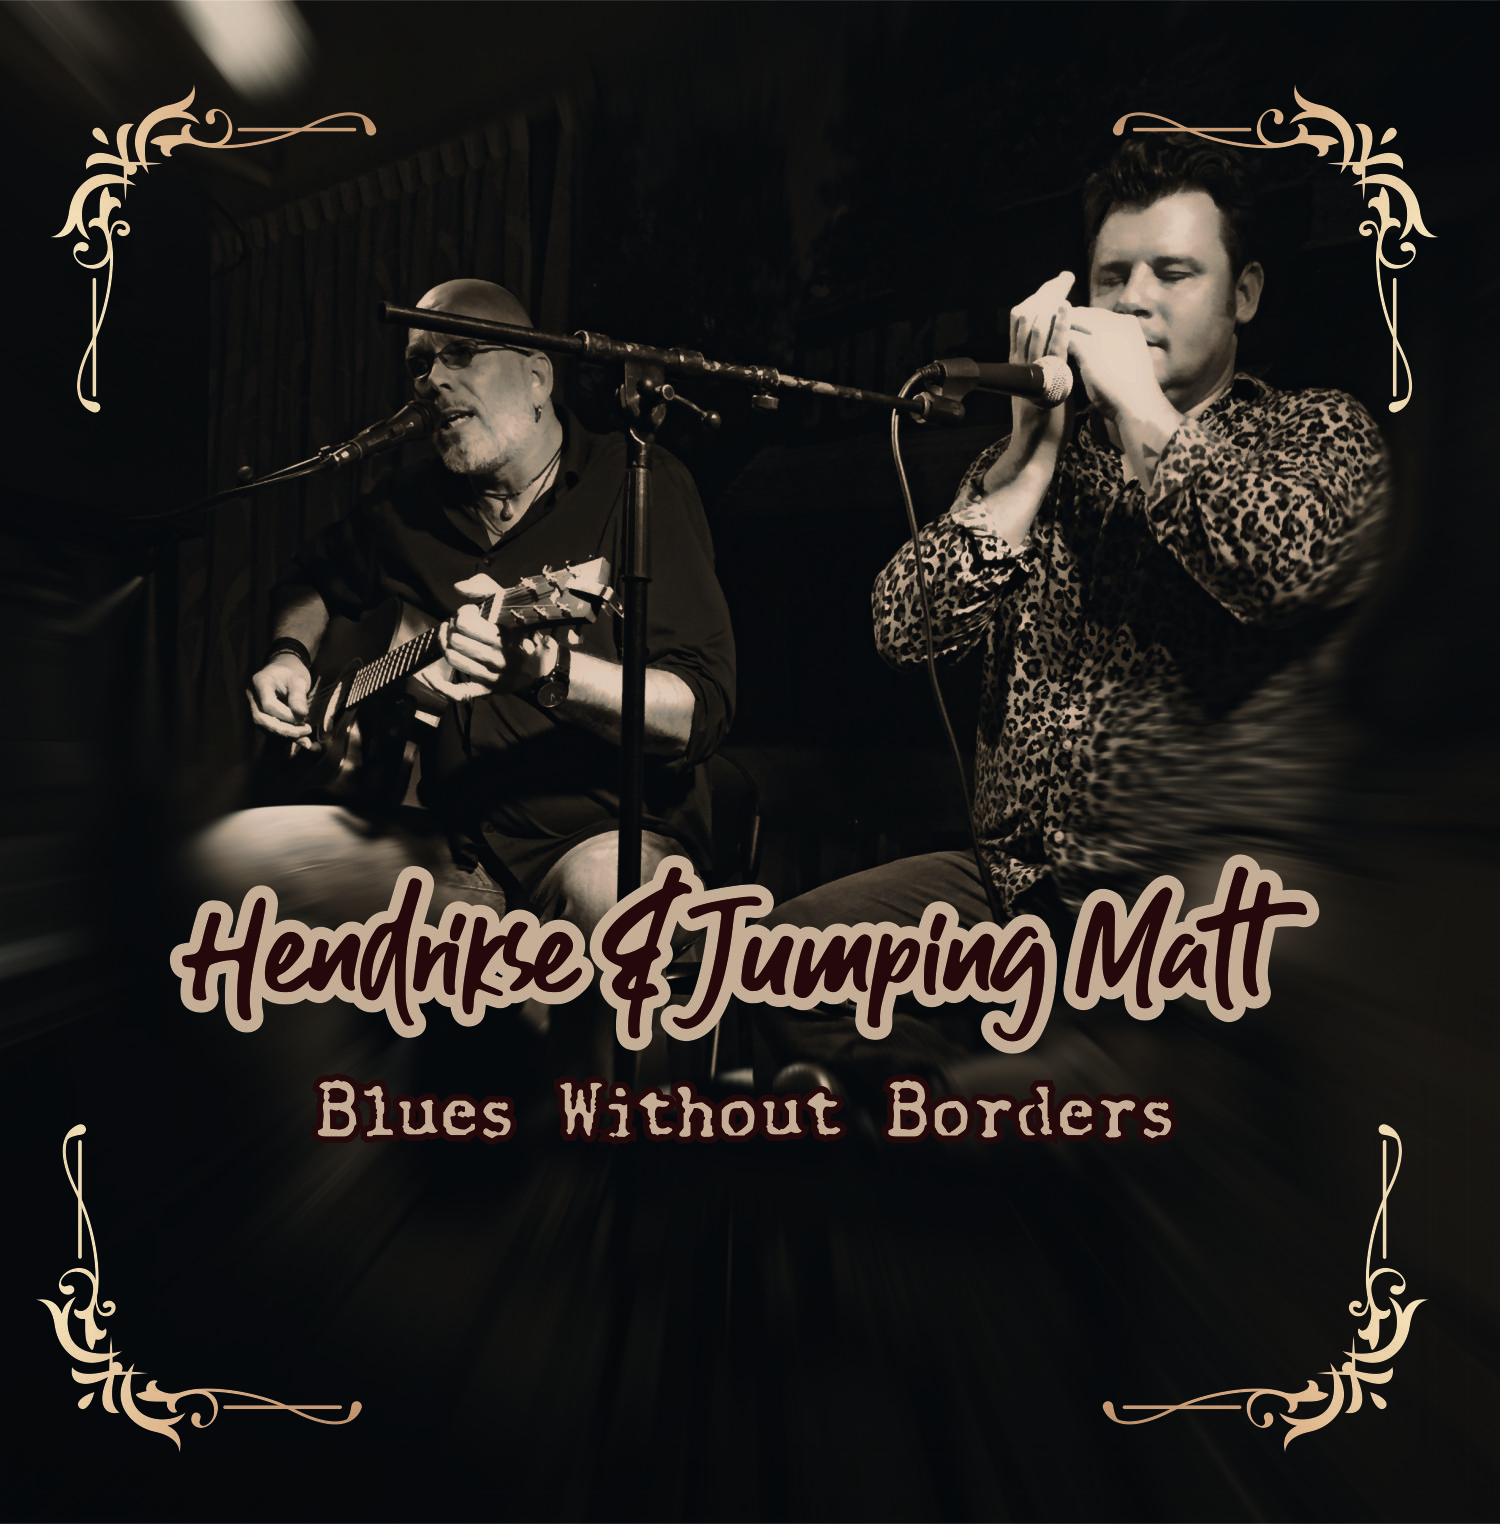 Hendrikse & Jumping Matt - Blues Without Borders